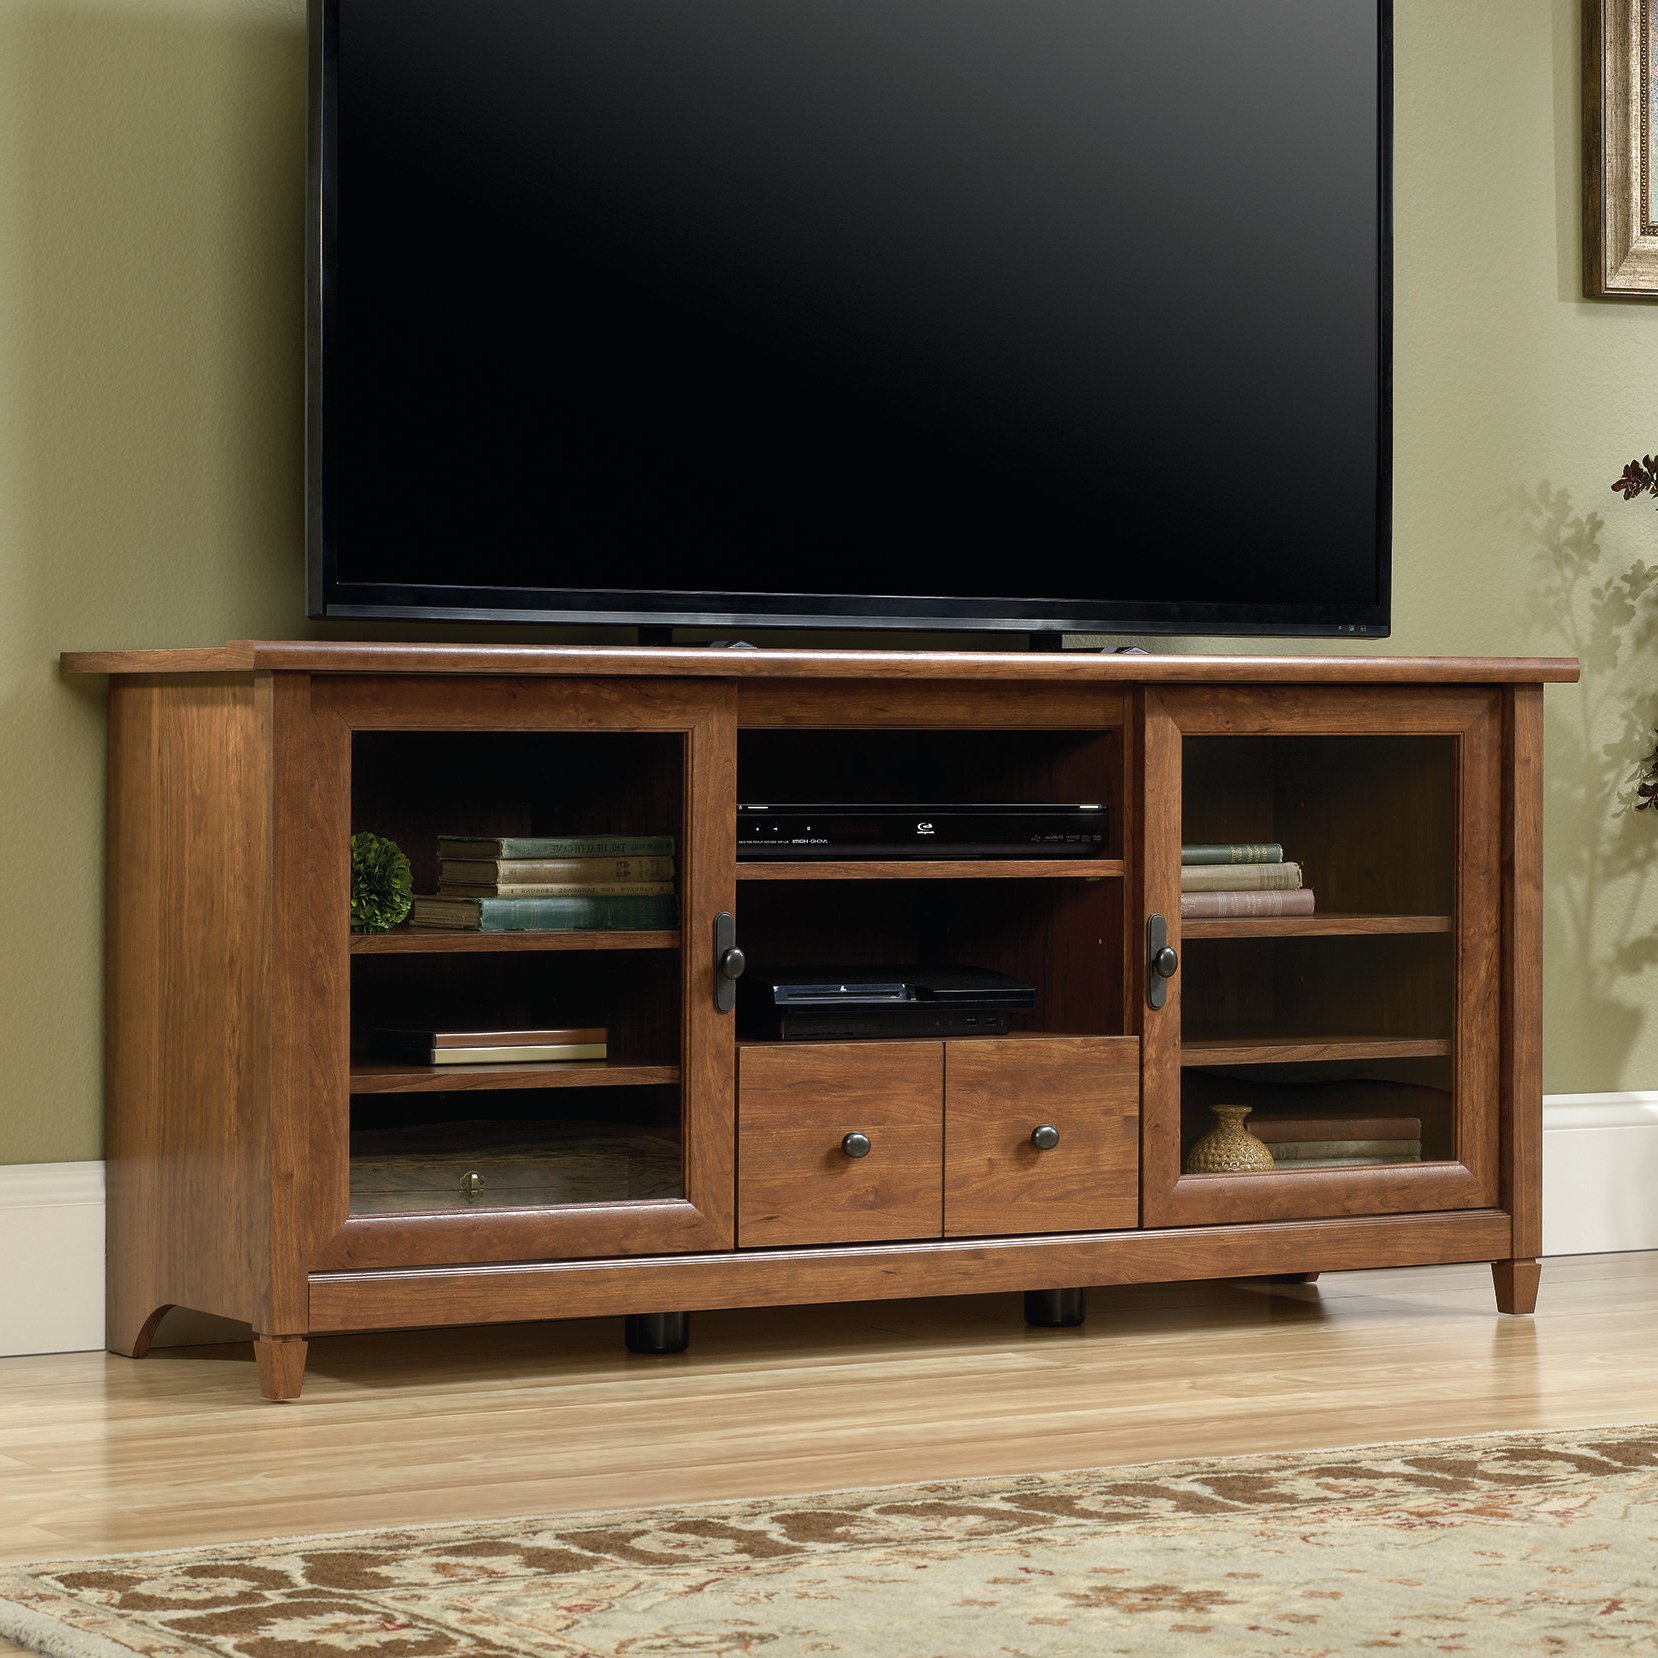 End Table And Tv Stand Set | Wayfair Intended For Combs 63 Inch Tv Stands (View 6 of 20)